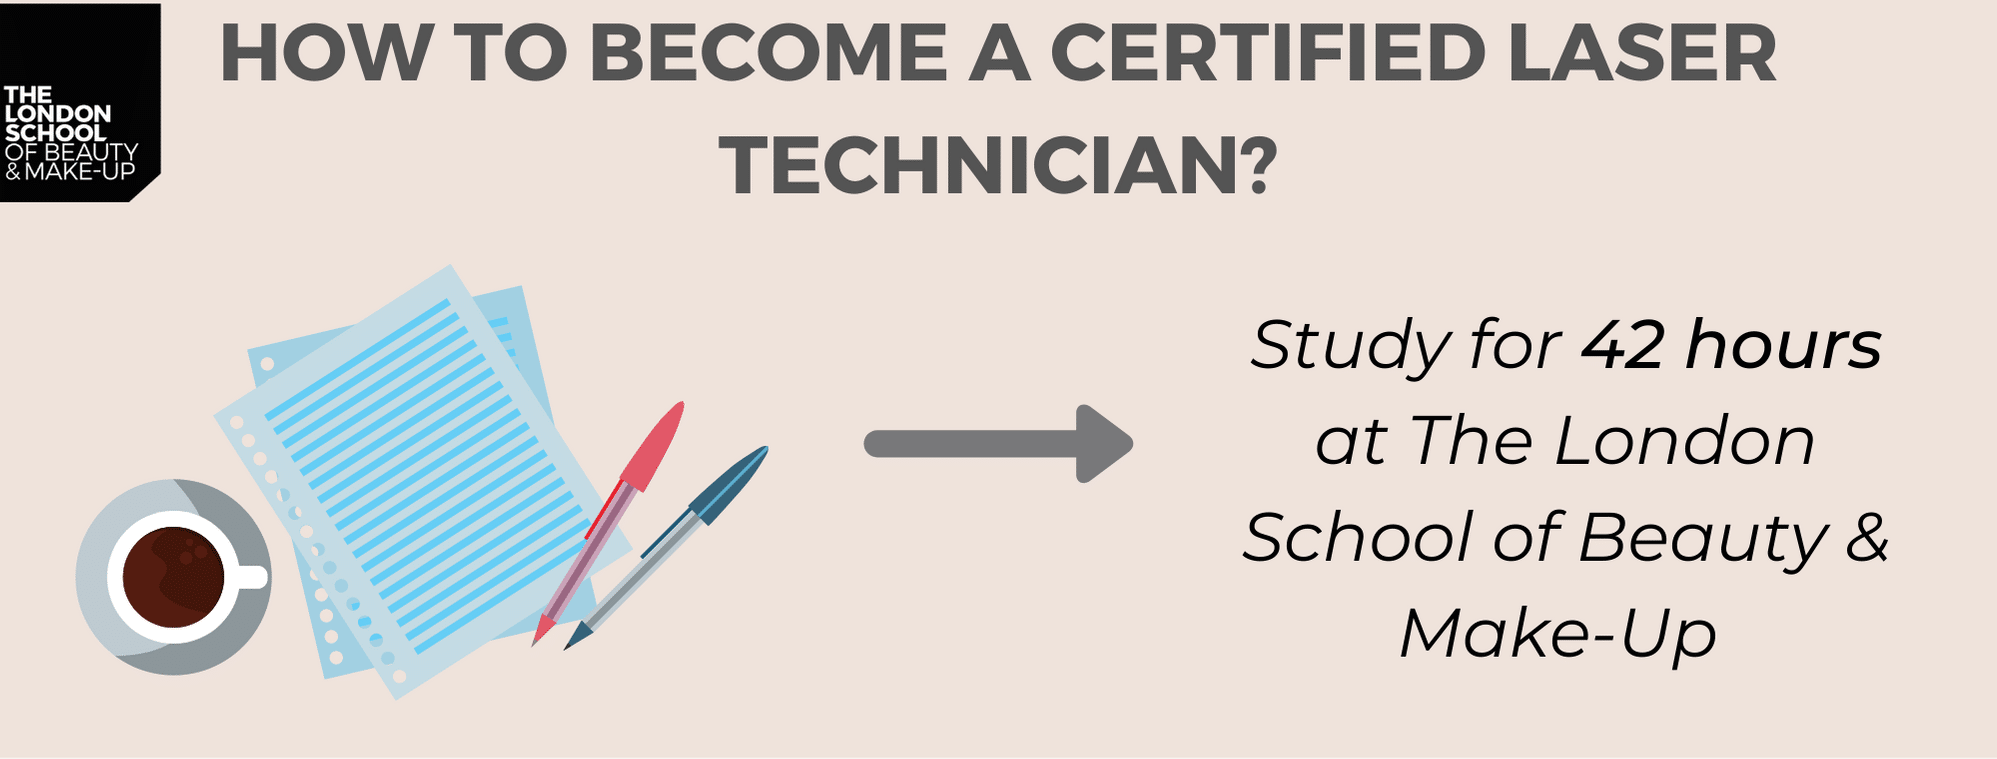 How to become a certified laser technician 1